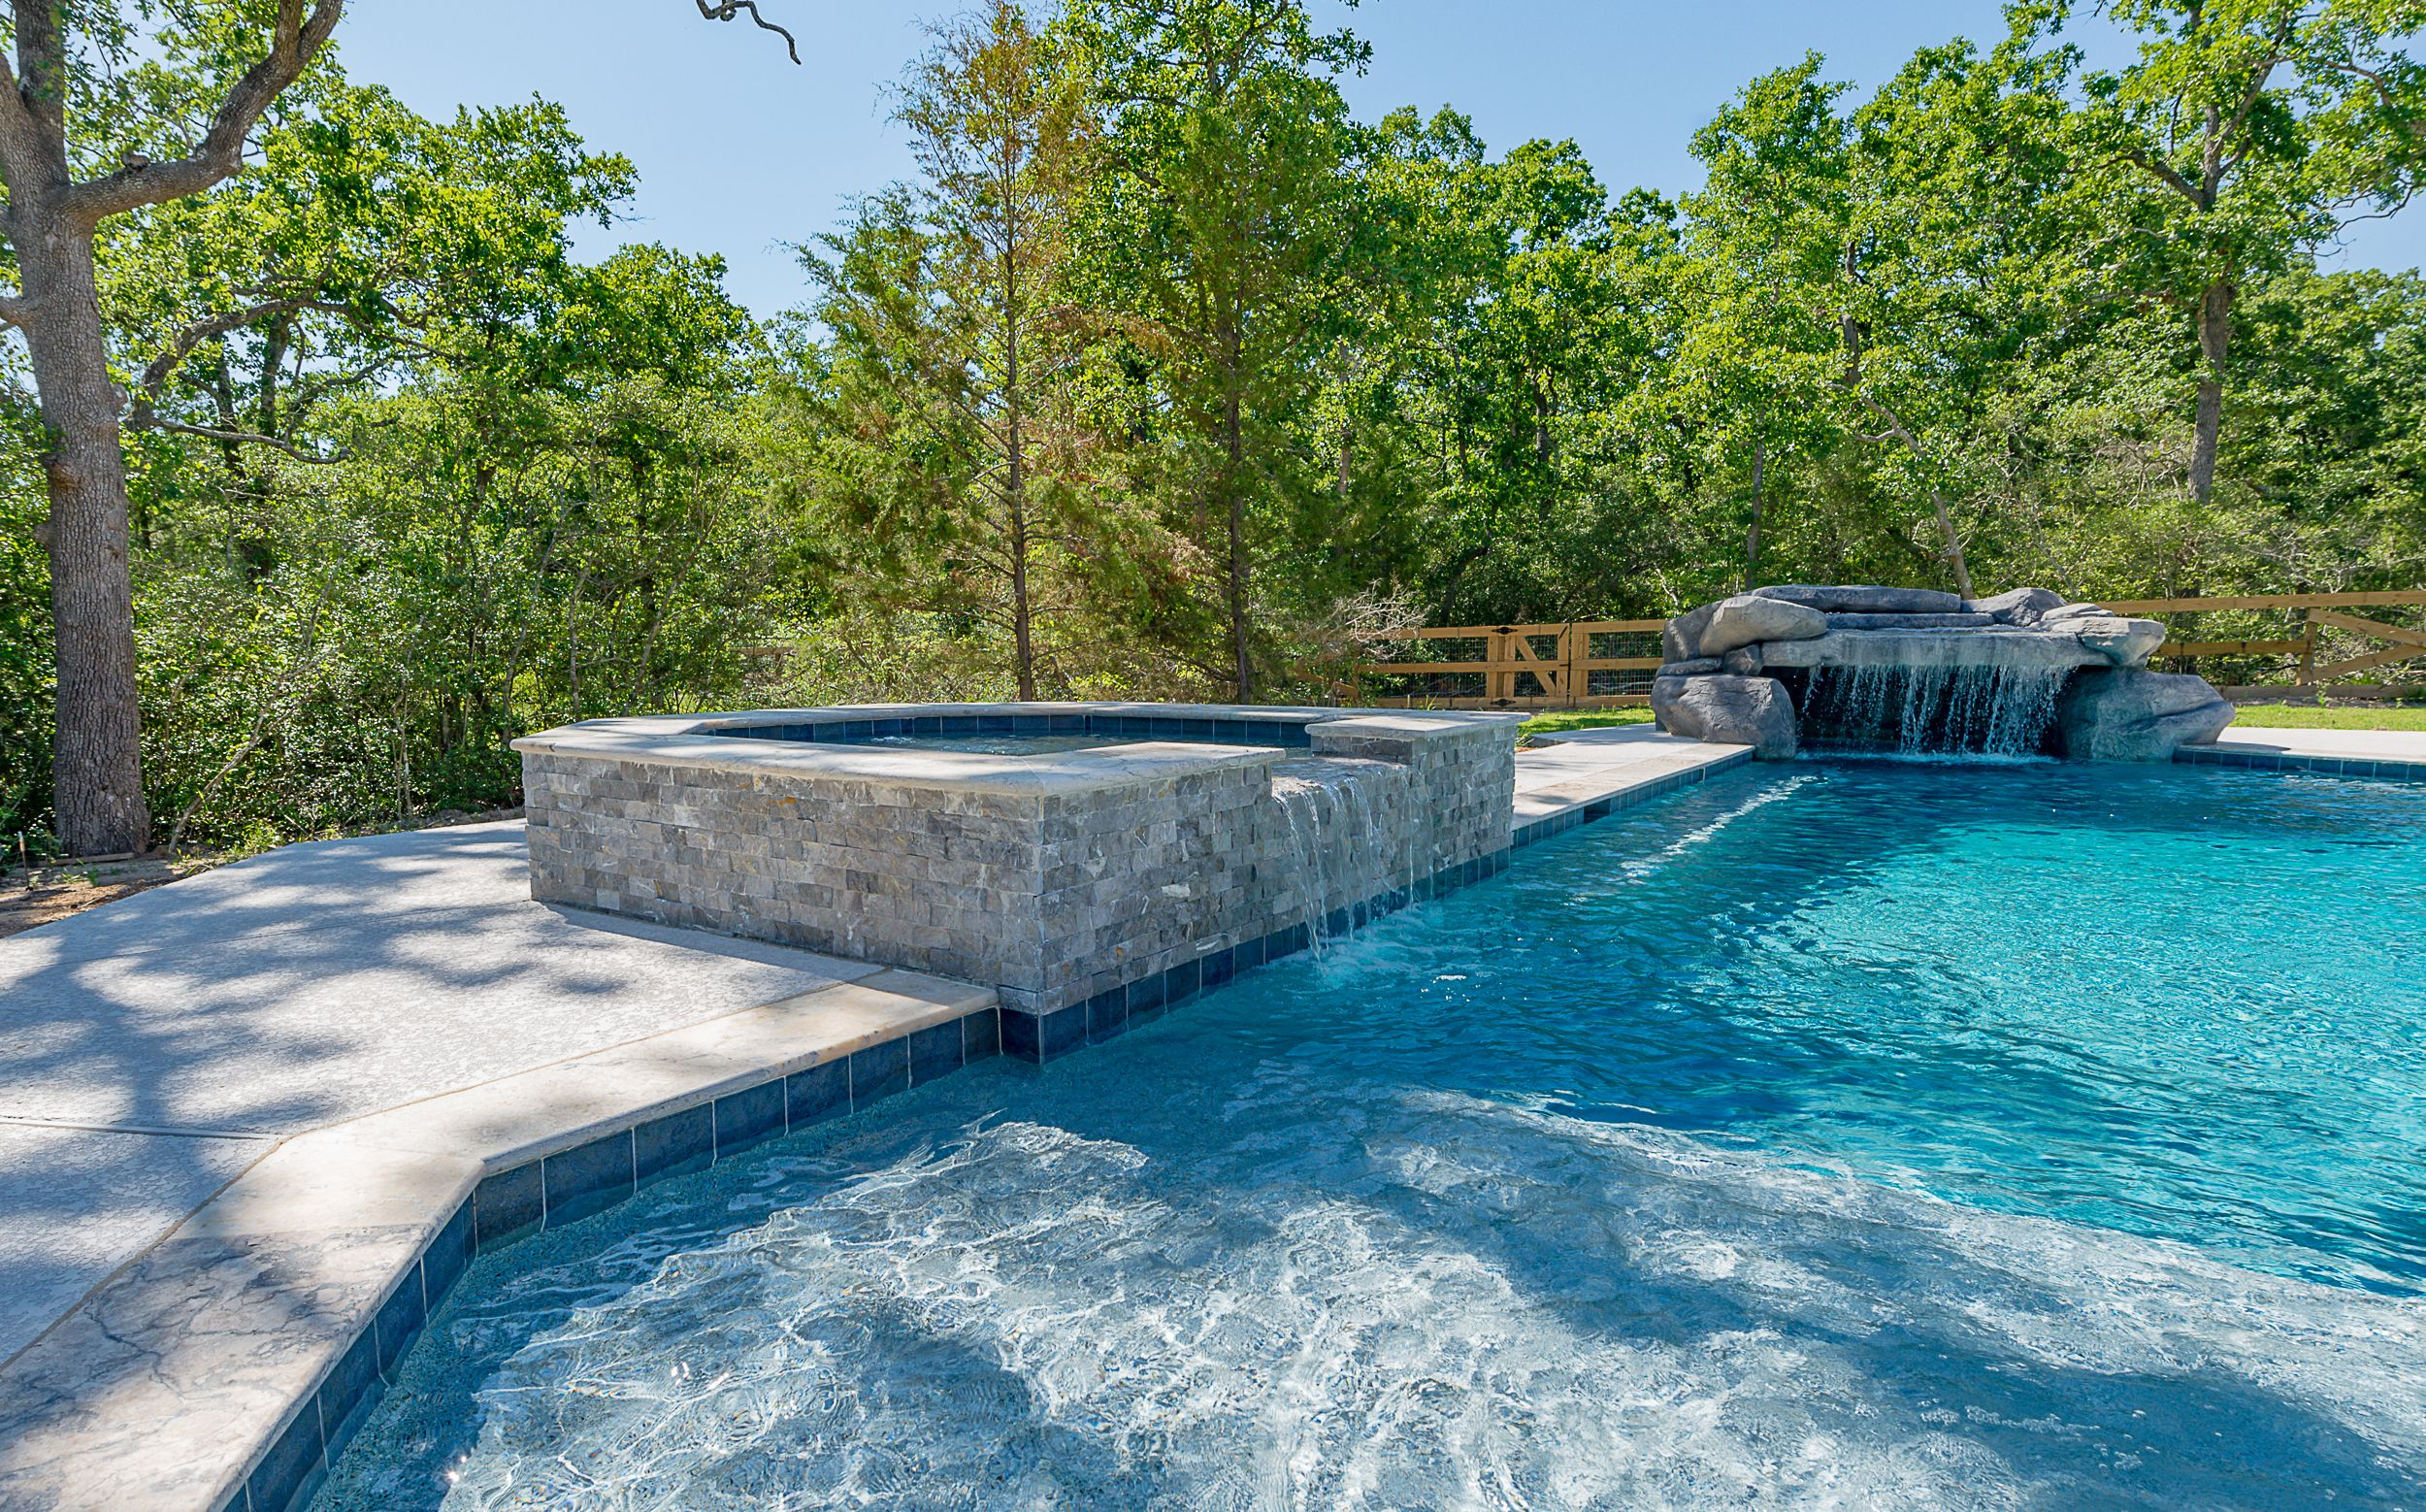 Pool In Indian Lakes Grotto With A Waterfall And A Spa With A Water Fall Overflow 979 704 6102 Www Paradiseoasispools Oasis Pool Outdoor Spa Pool Builders